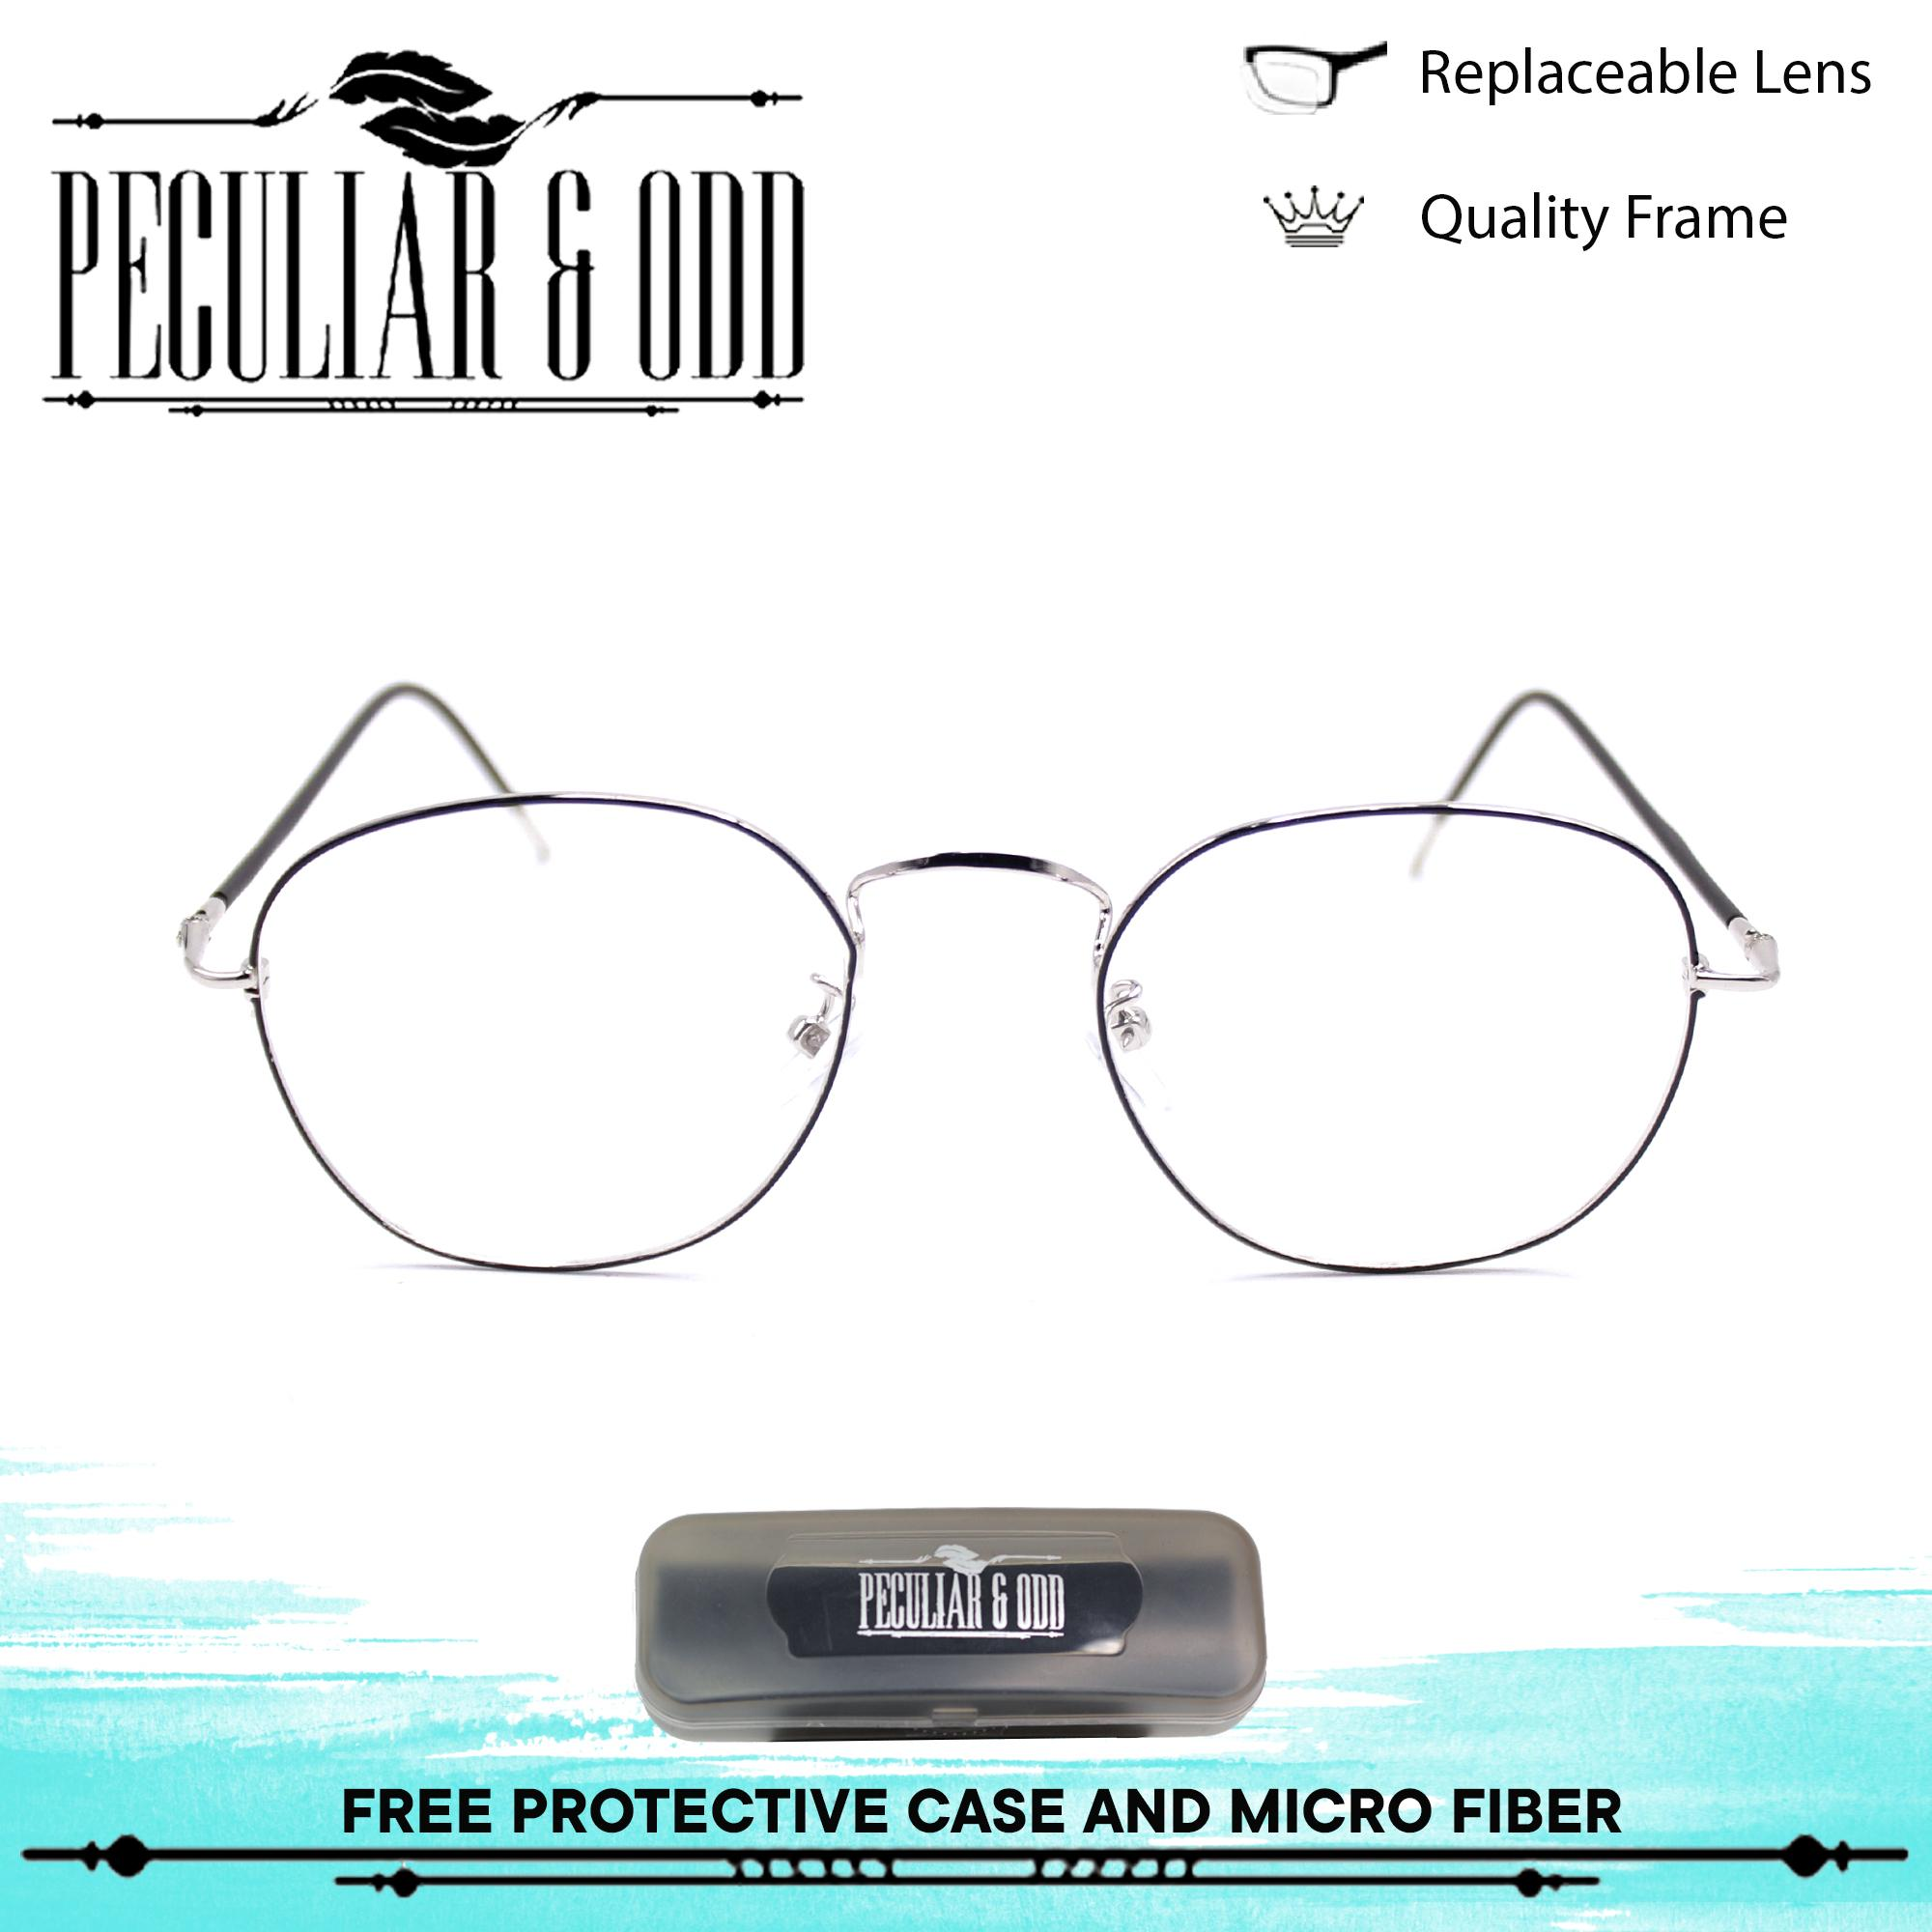 Peculiar Premium Round Eyeglasses 9959_SilverBlack in Aircraft Aluminum Alloy Replaceable Optical Lens Unisex Eyewear